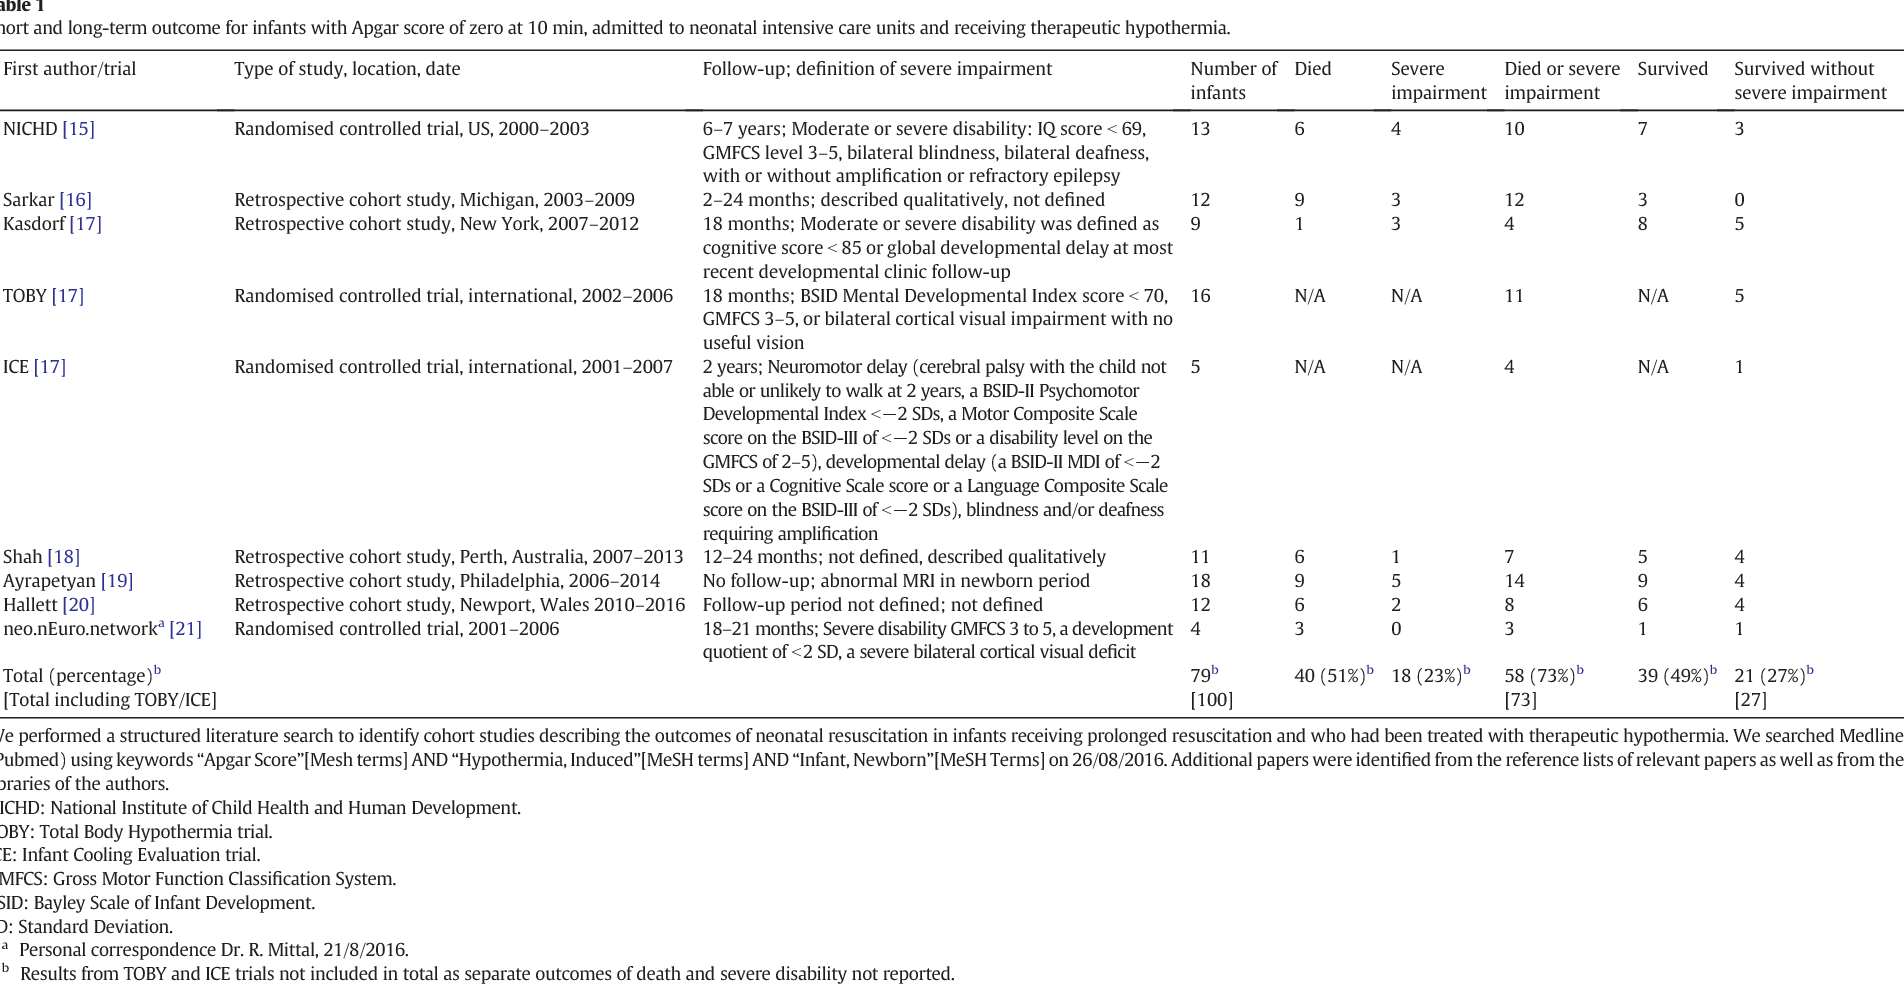 Table 1 Short and long-term outcome for infants with Apgar score of zero at 10 min, admitted to neonatal intensive care units and receiving therapeutic hypothermia.